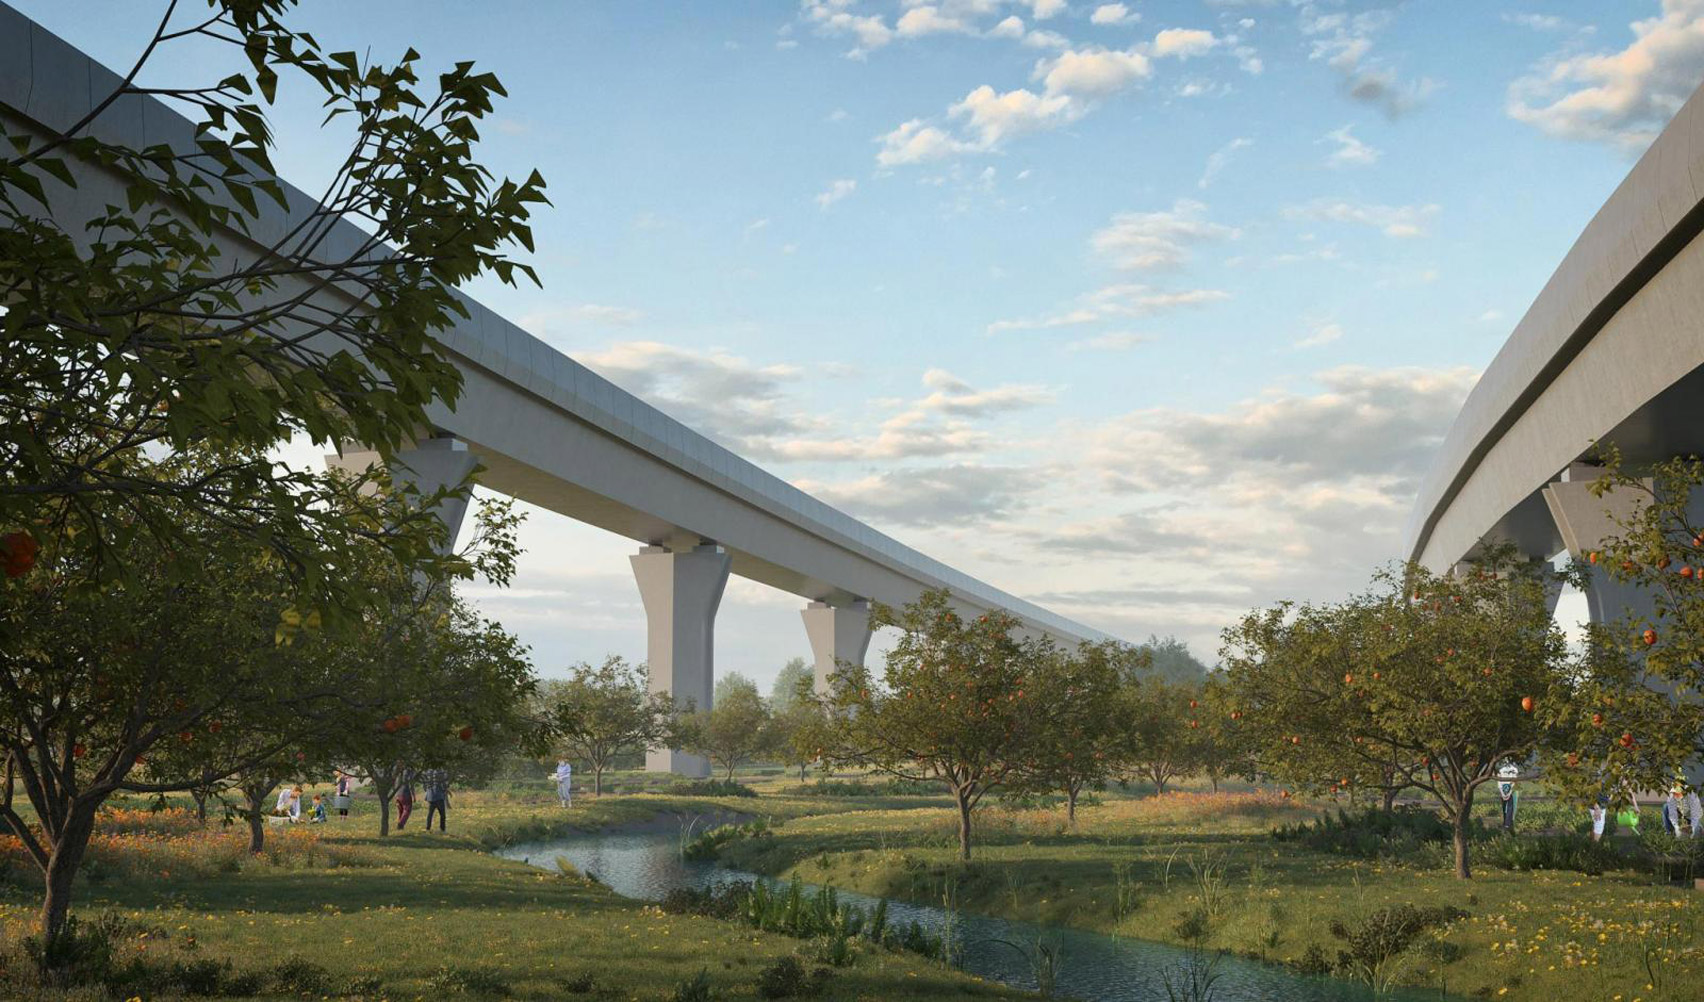 HS2 design by Weston Williamson + Partners